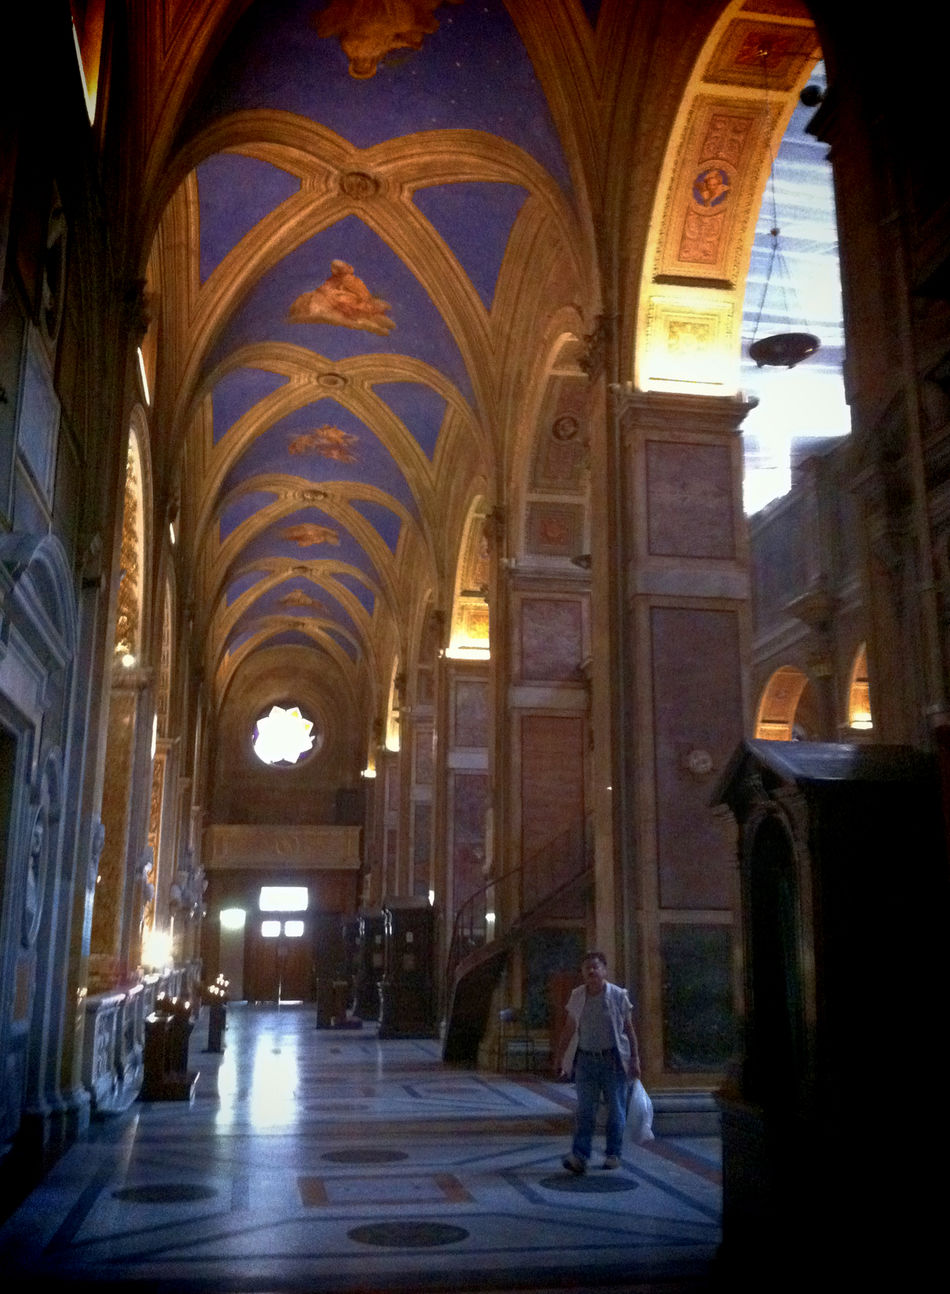 Rome, Italy Sep 2 - 4, 2011 Arch Architecture Corridor Day Indoors  People Place Of Worship Religion Sunlight